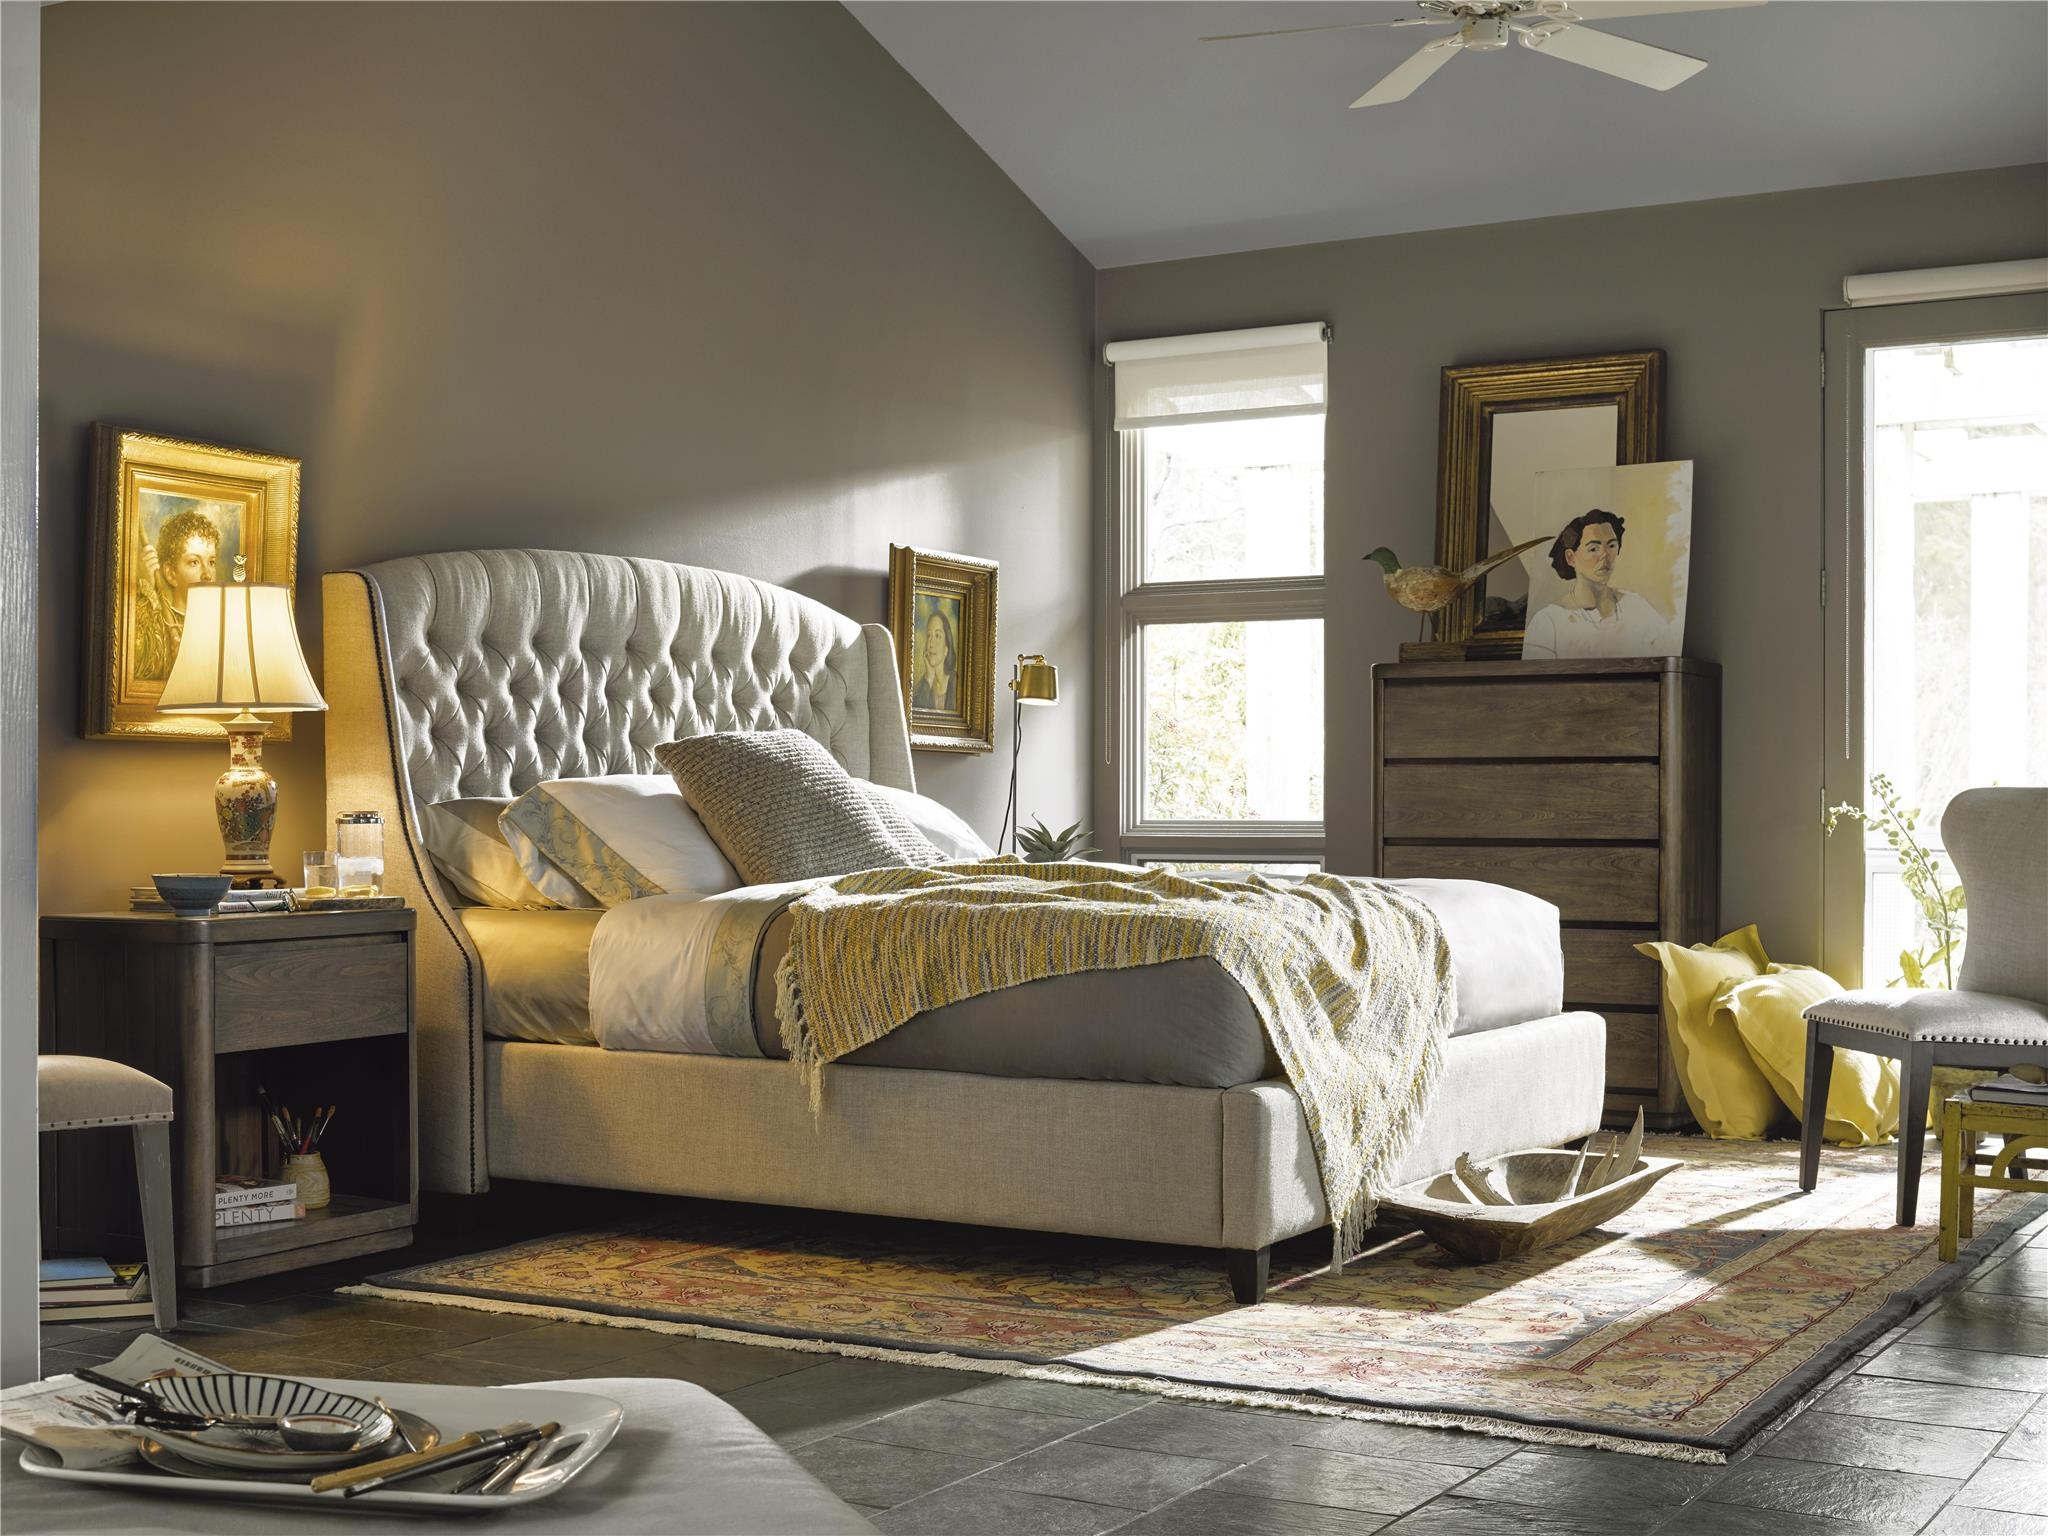 Universal Furniture Bedroom Halston Bed King (3 Pc) 552260B A At Turner  Furniture Company